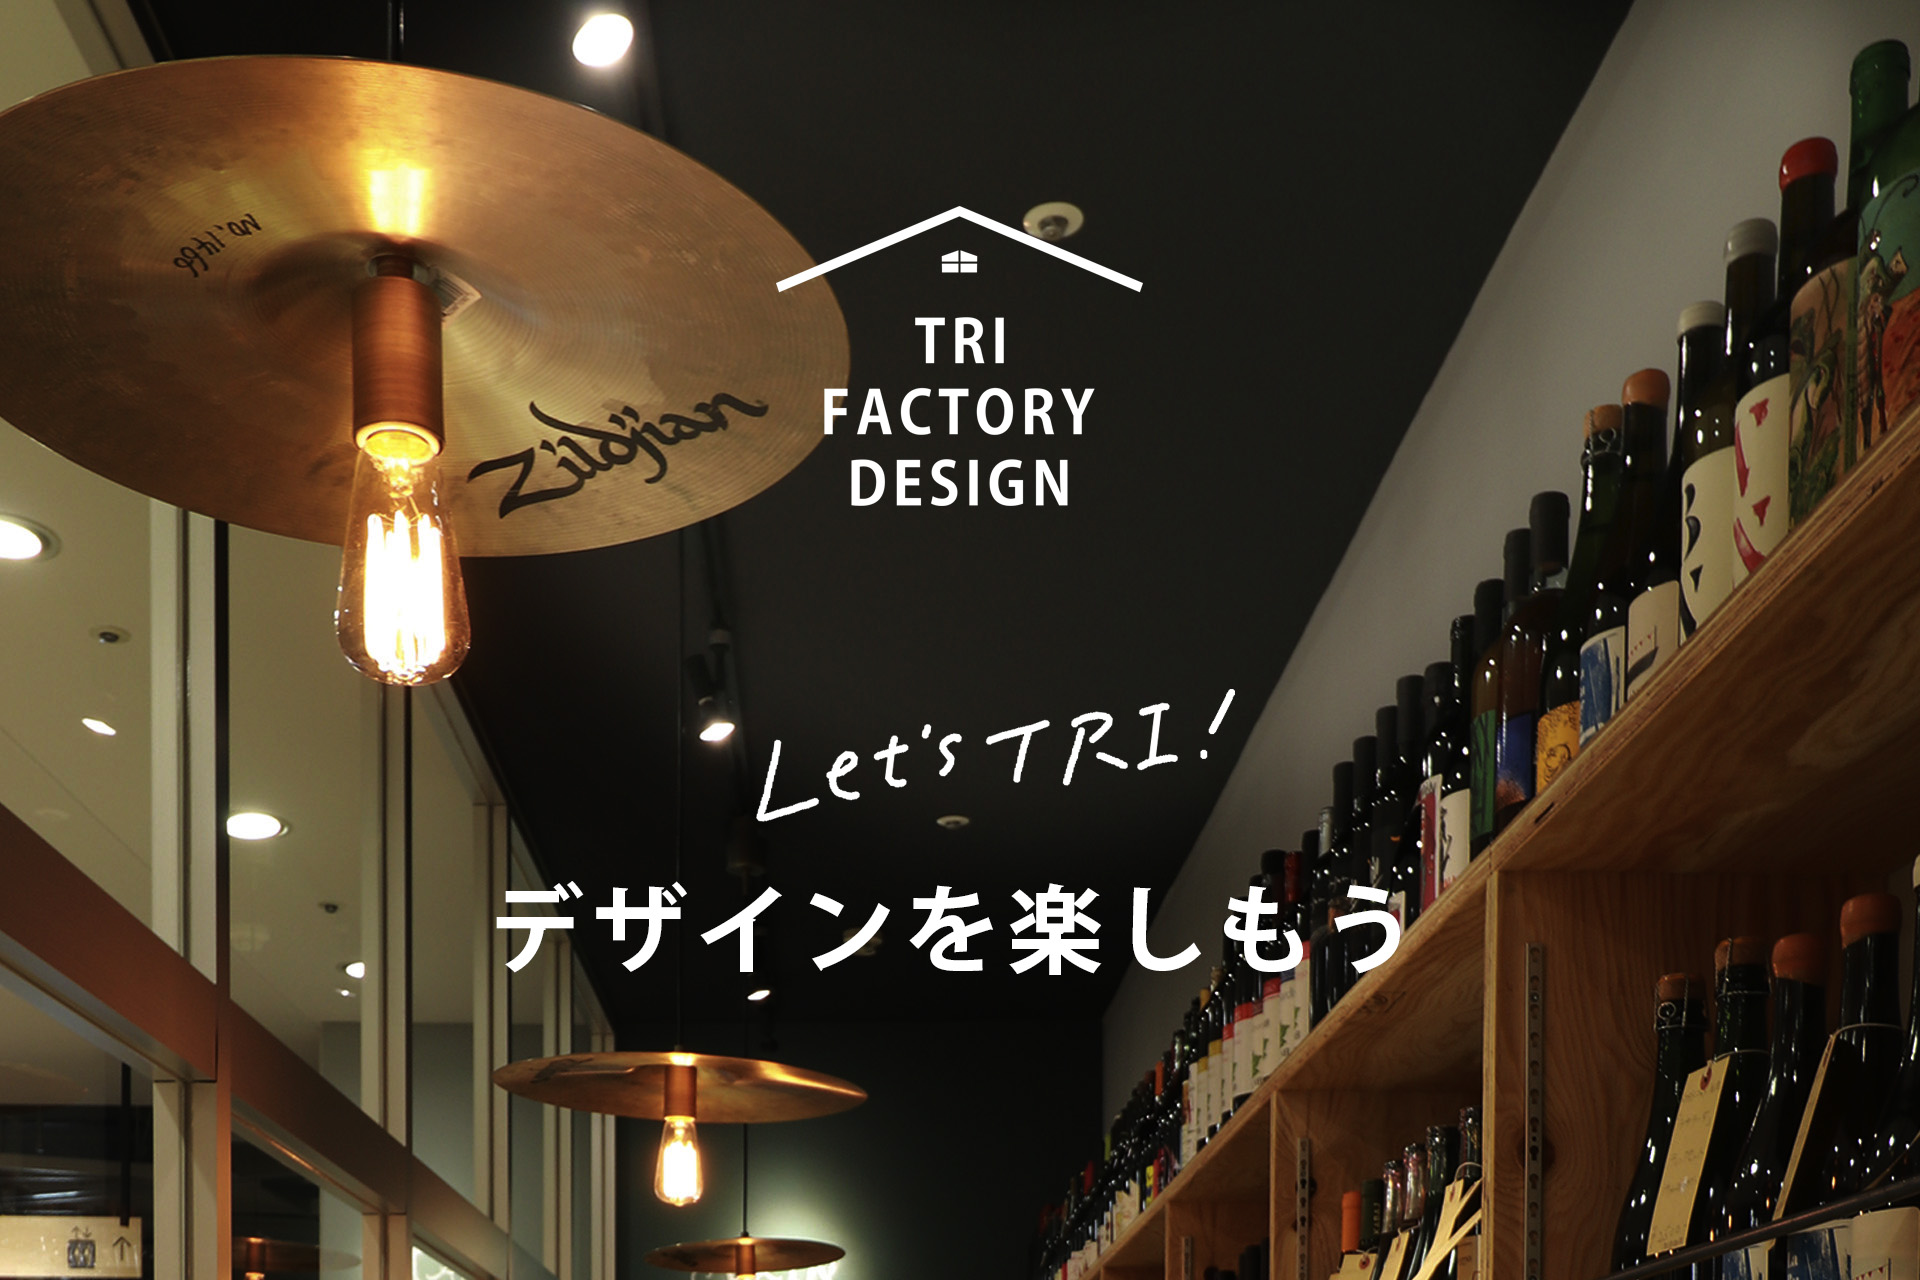 TRY FACTORY DESIGN Let's TRY! デザインを楽しもう